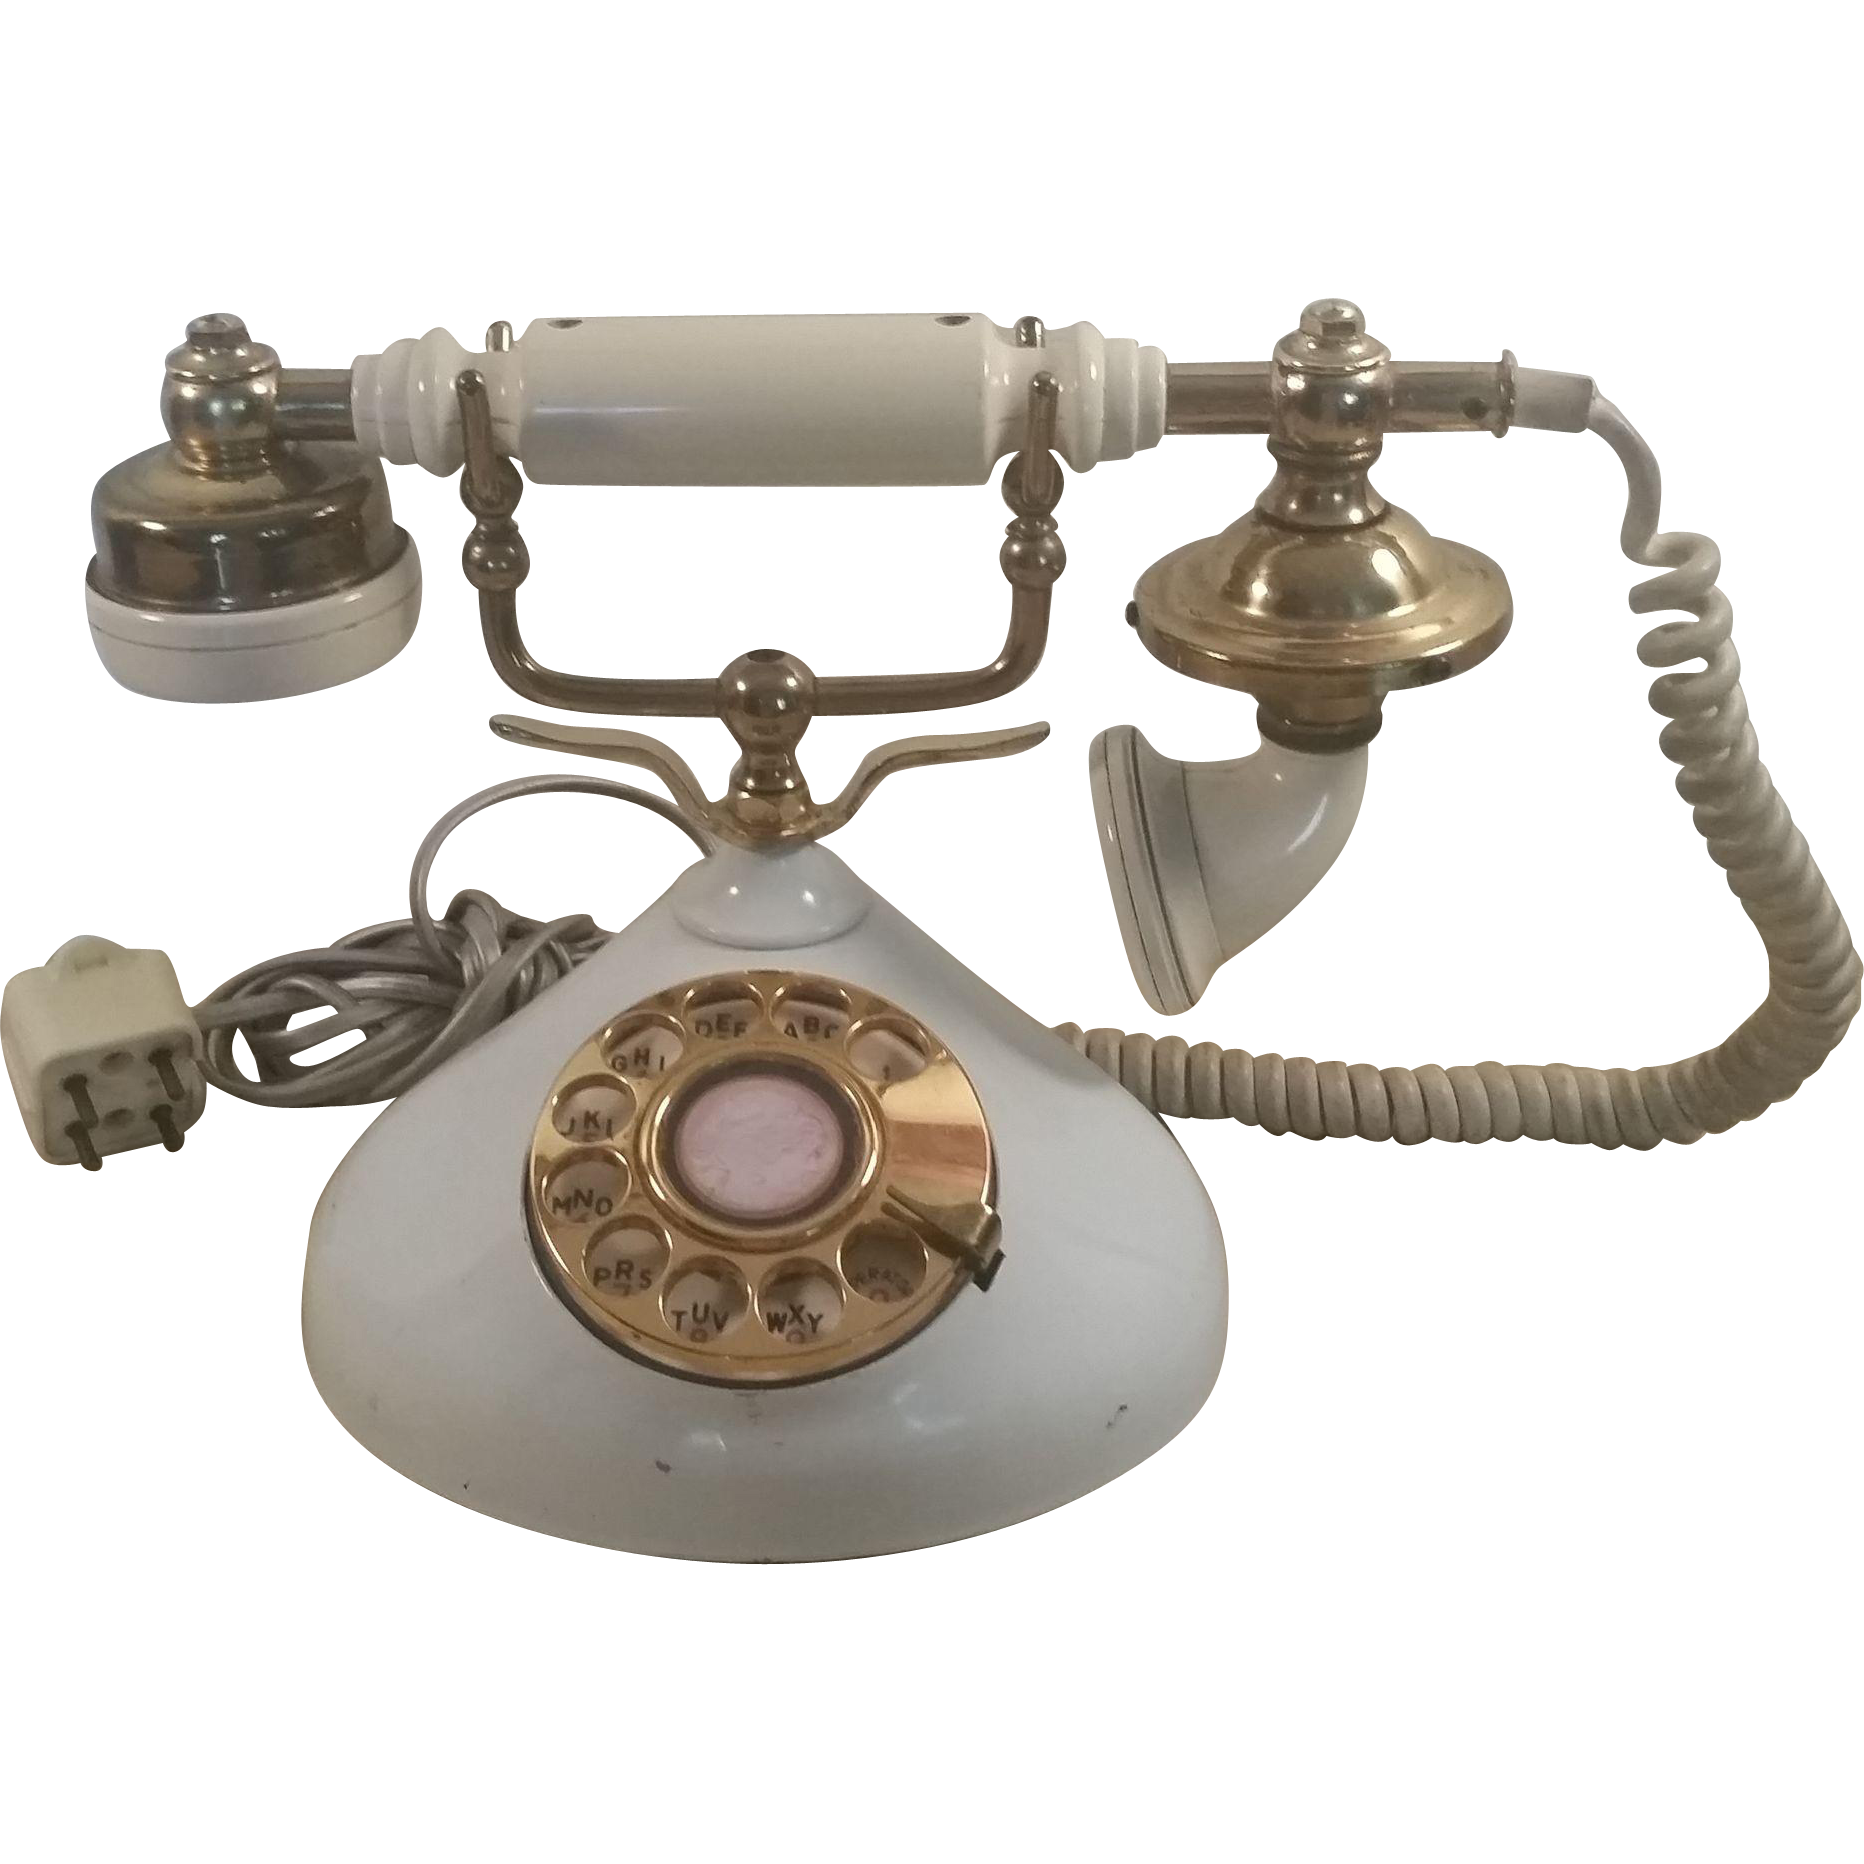 1970's Brass Plated Decorative Telephone Shop the Ruby Red Tag 30% Off Sale - Starts July 19th at 8am PST - PREVIEW Items now. www.rubylane.com @rubylanecom #rubyredtagsale #vintagebeginshere